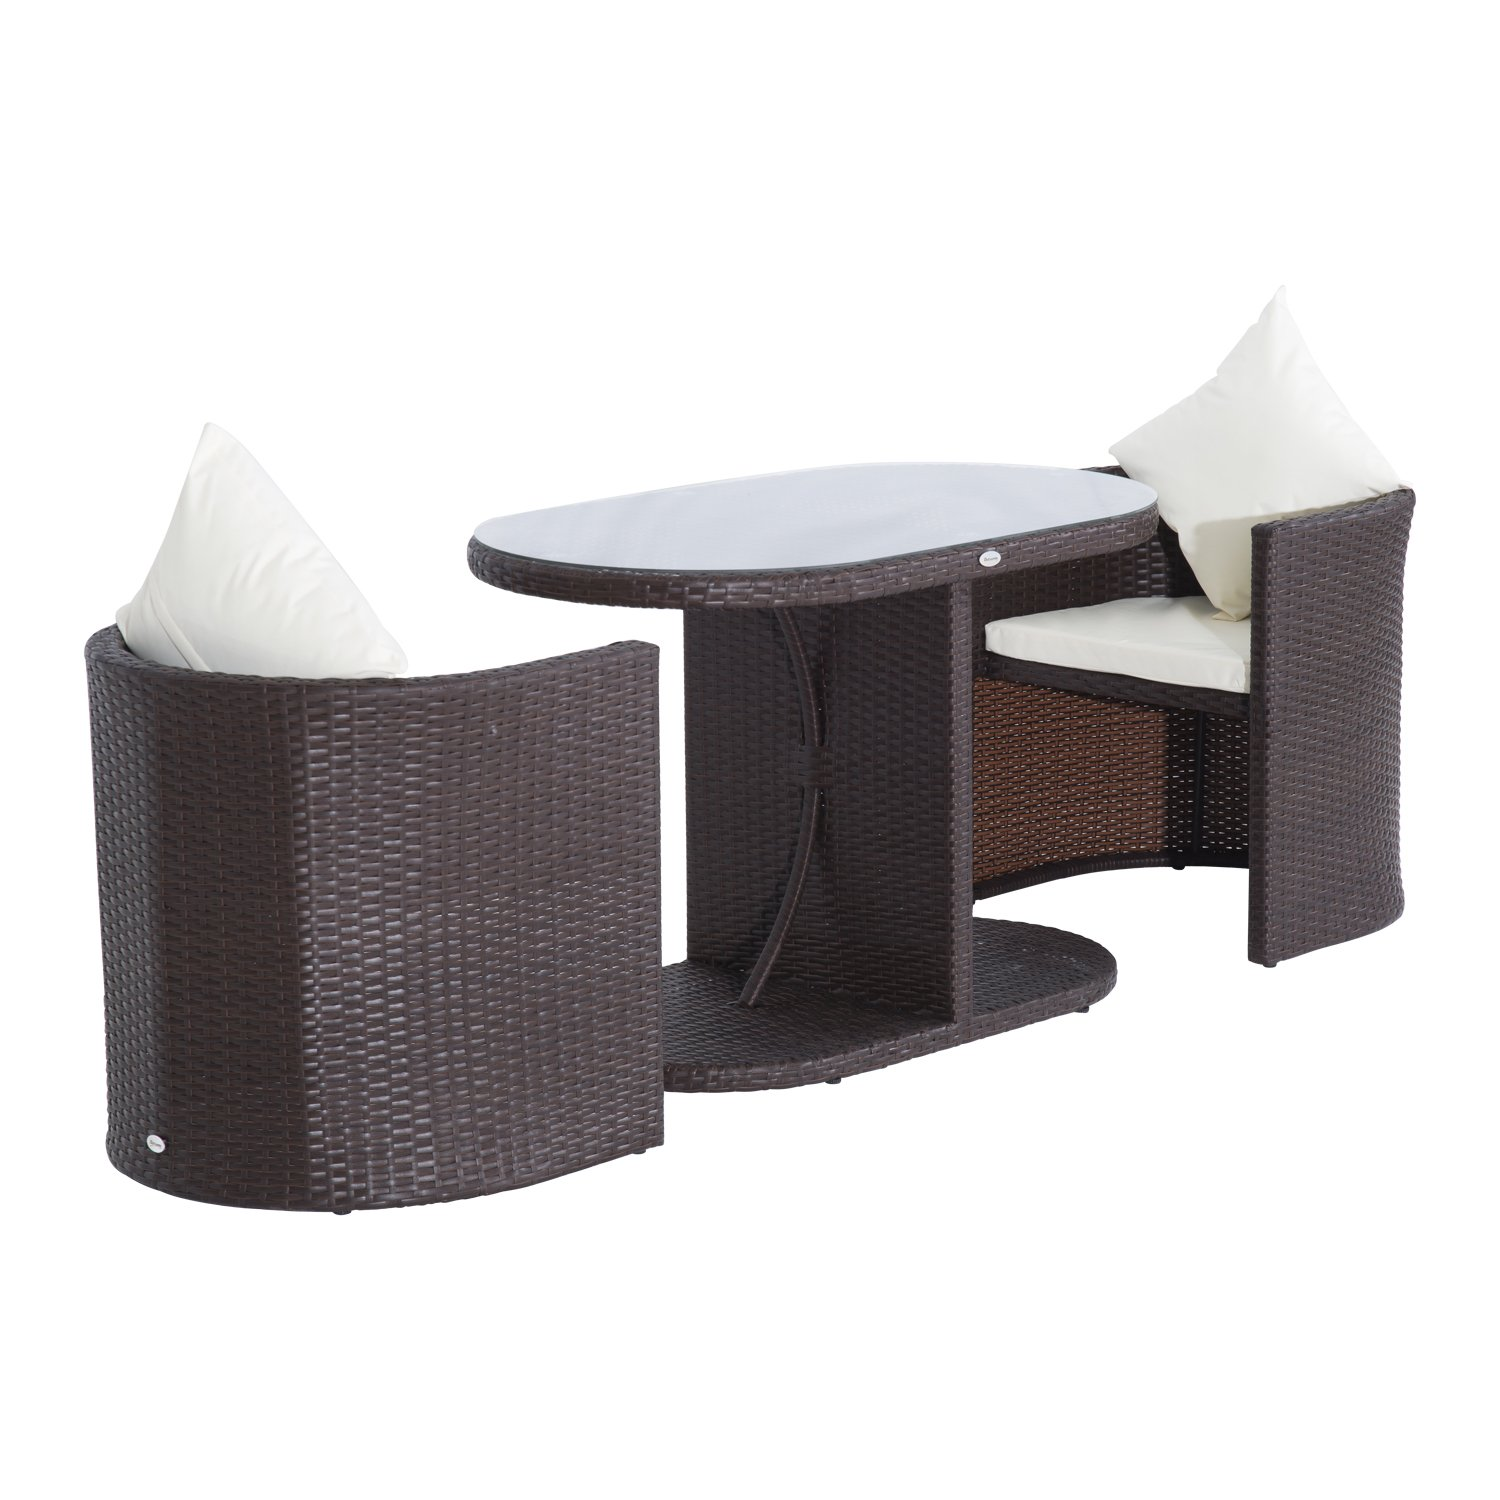 Rattan Table And Chair Set Part - 33: Amazon.com : Outsunny 3pc Table And Chair Rattan Wicker Patio Furniture Set  : Patio, Lawn U0026 Garden